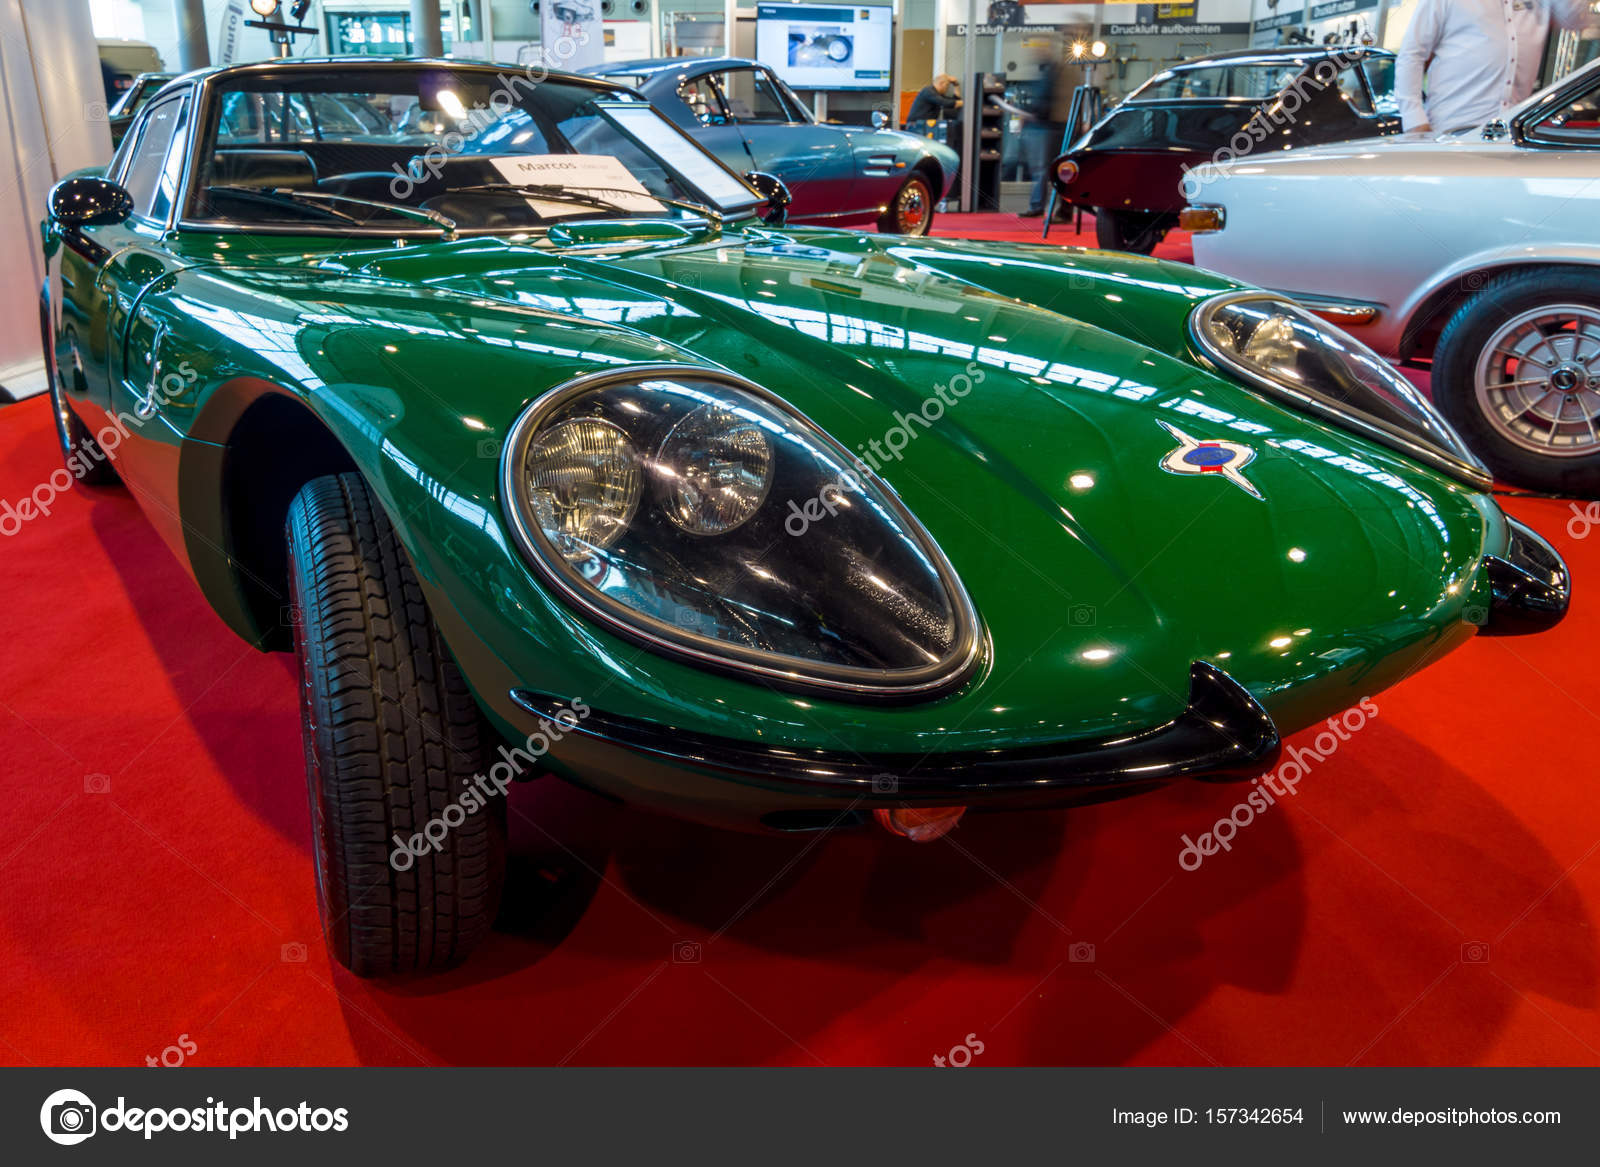 Sports car Gt 1500 Marcos, 1967 — Foto editorial de stock © S_Kohl ...